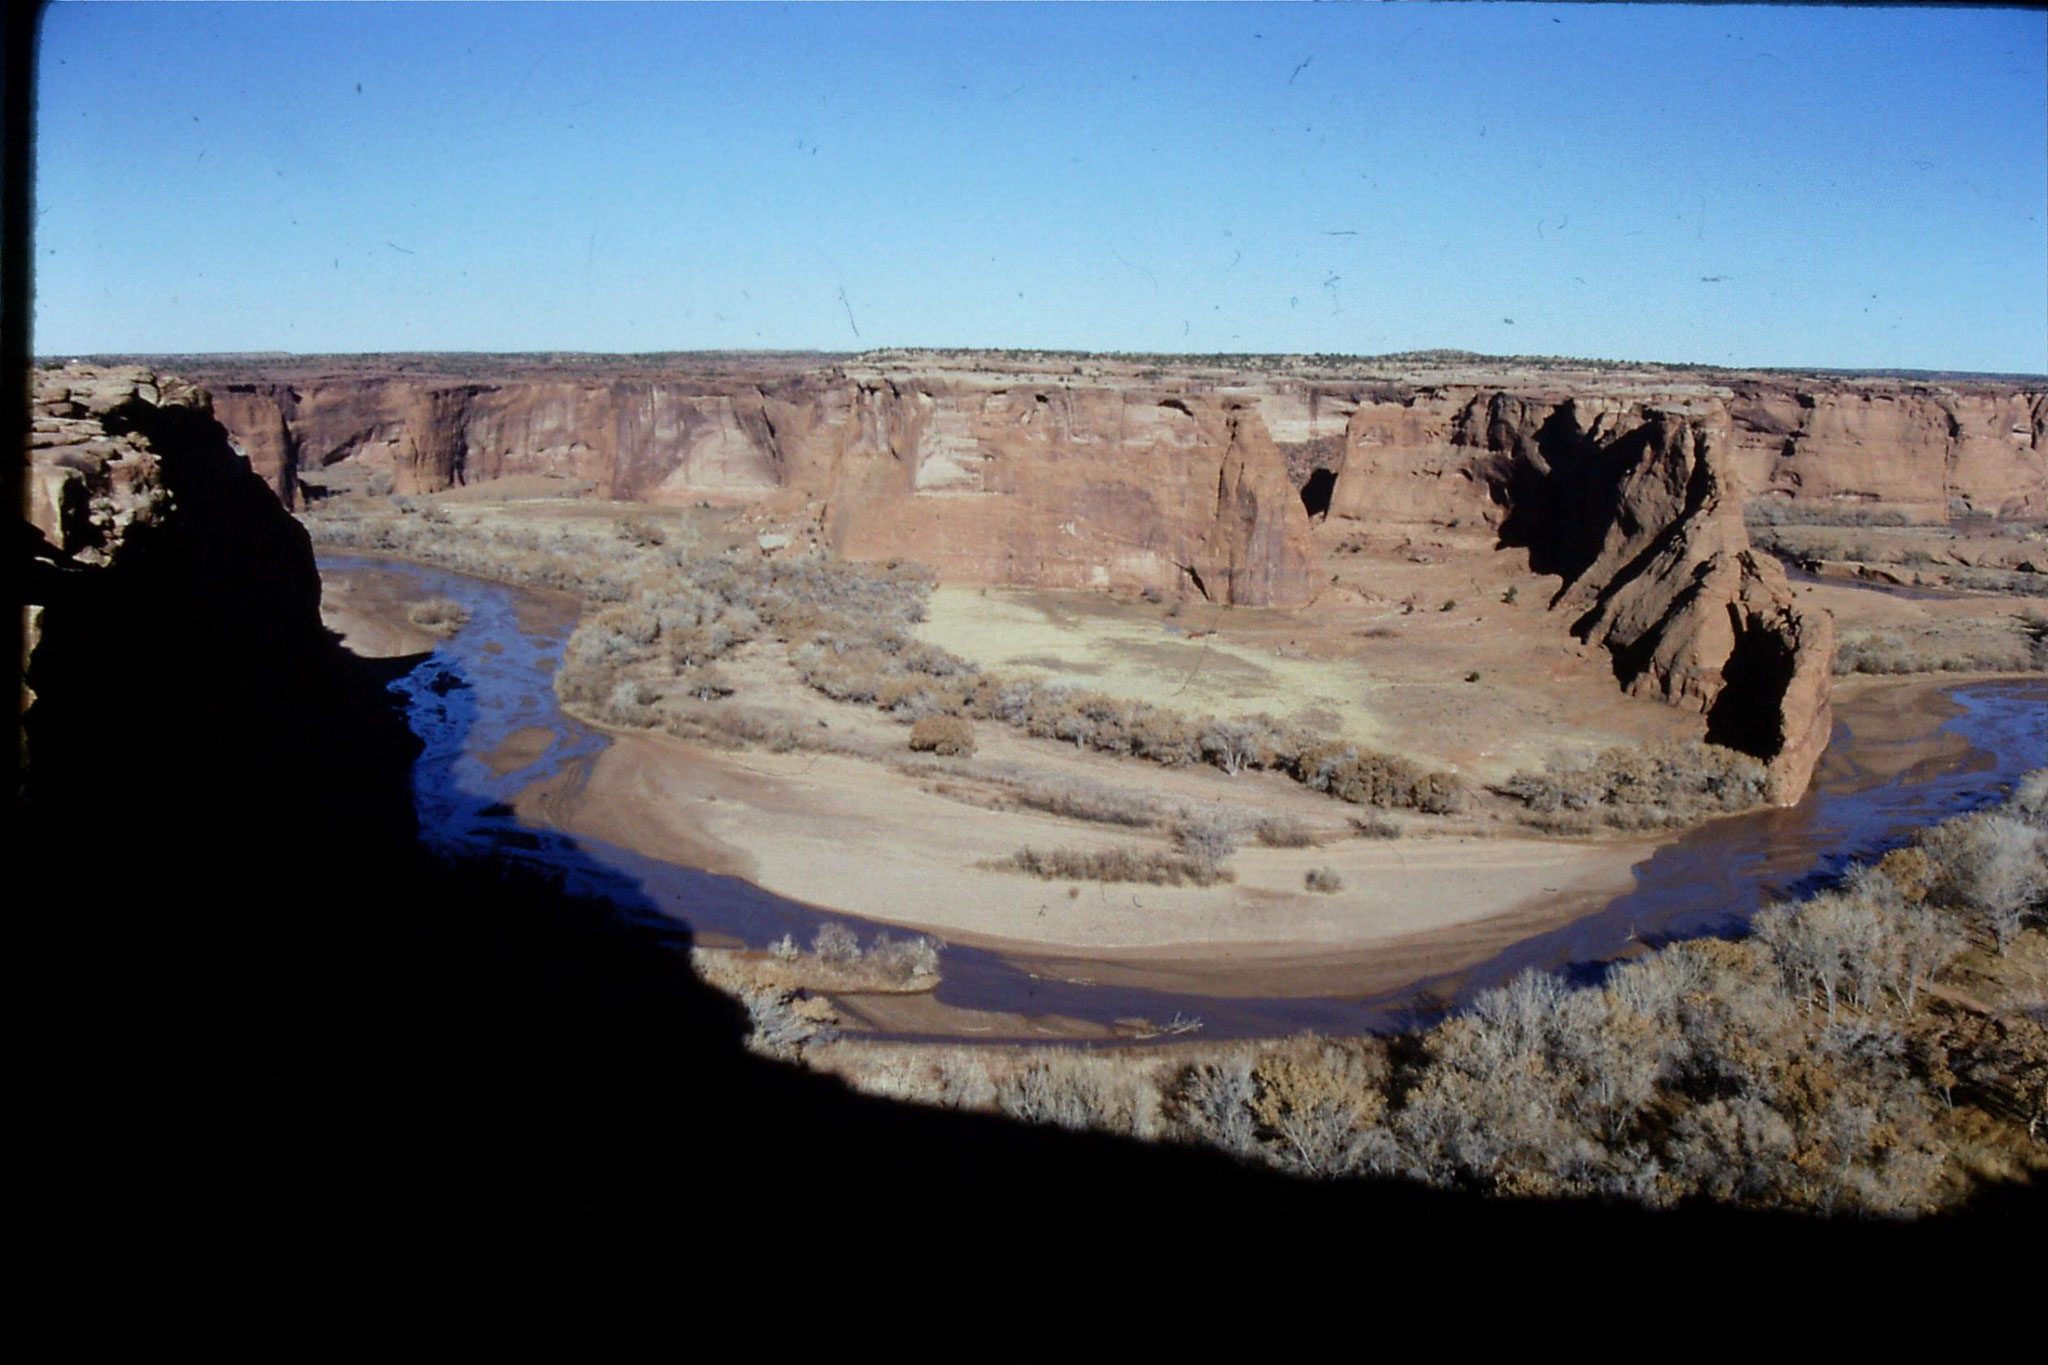 14/12/1990: 21: Canyon de Chelly